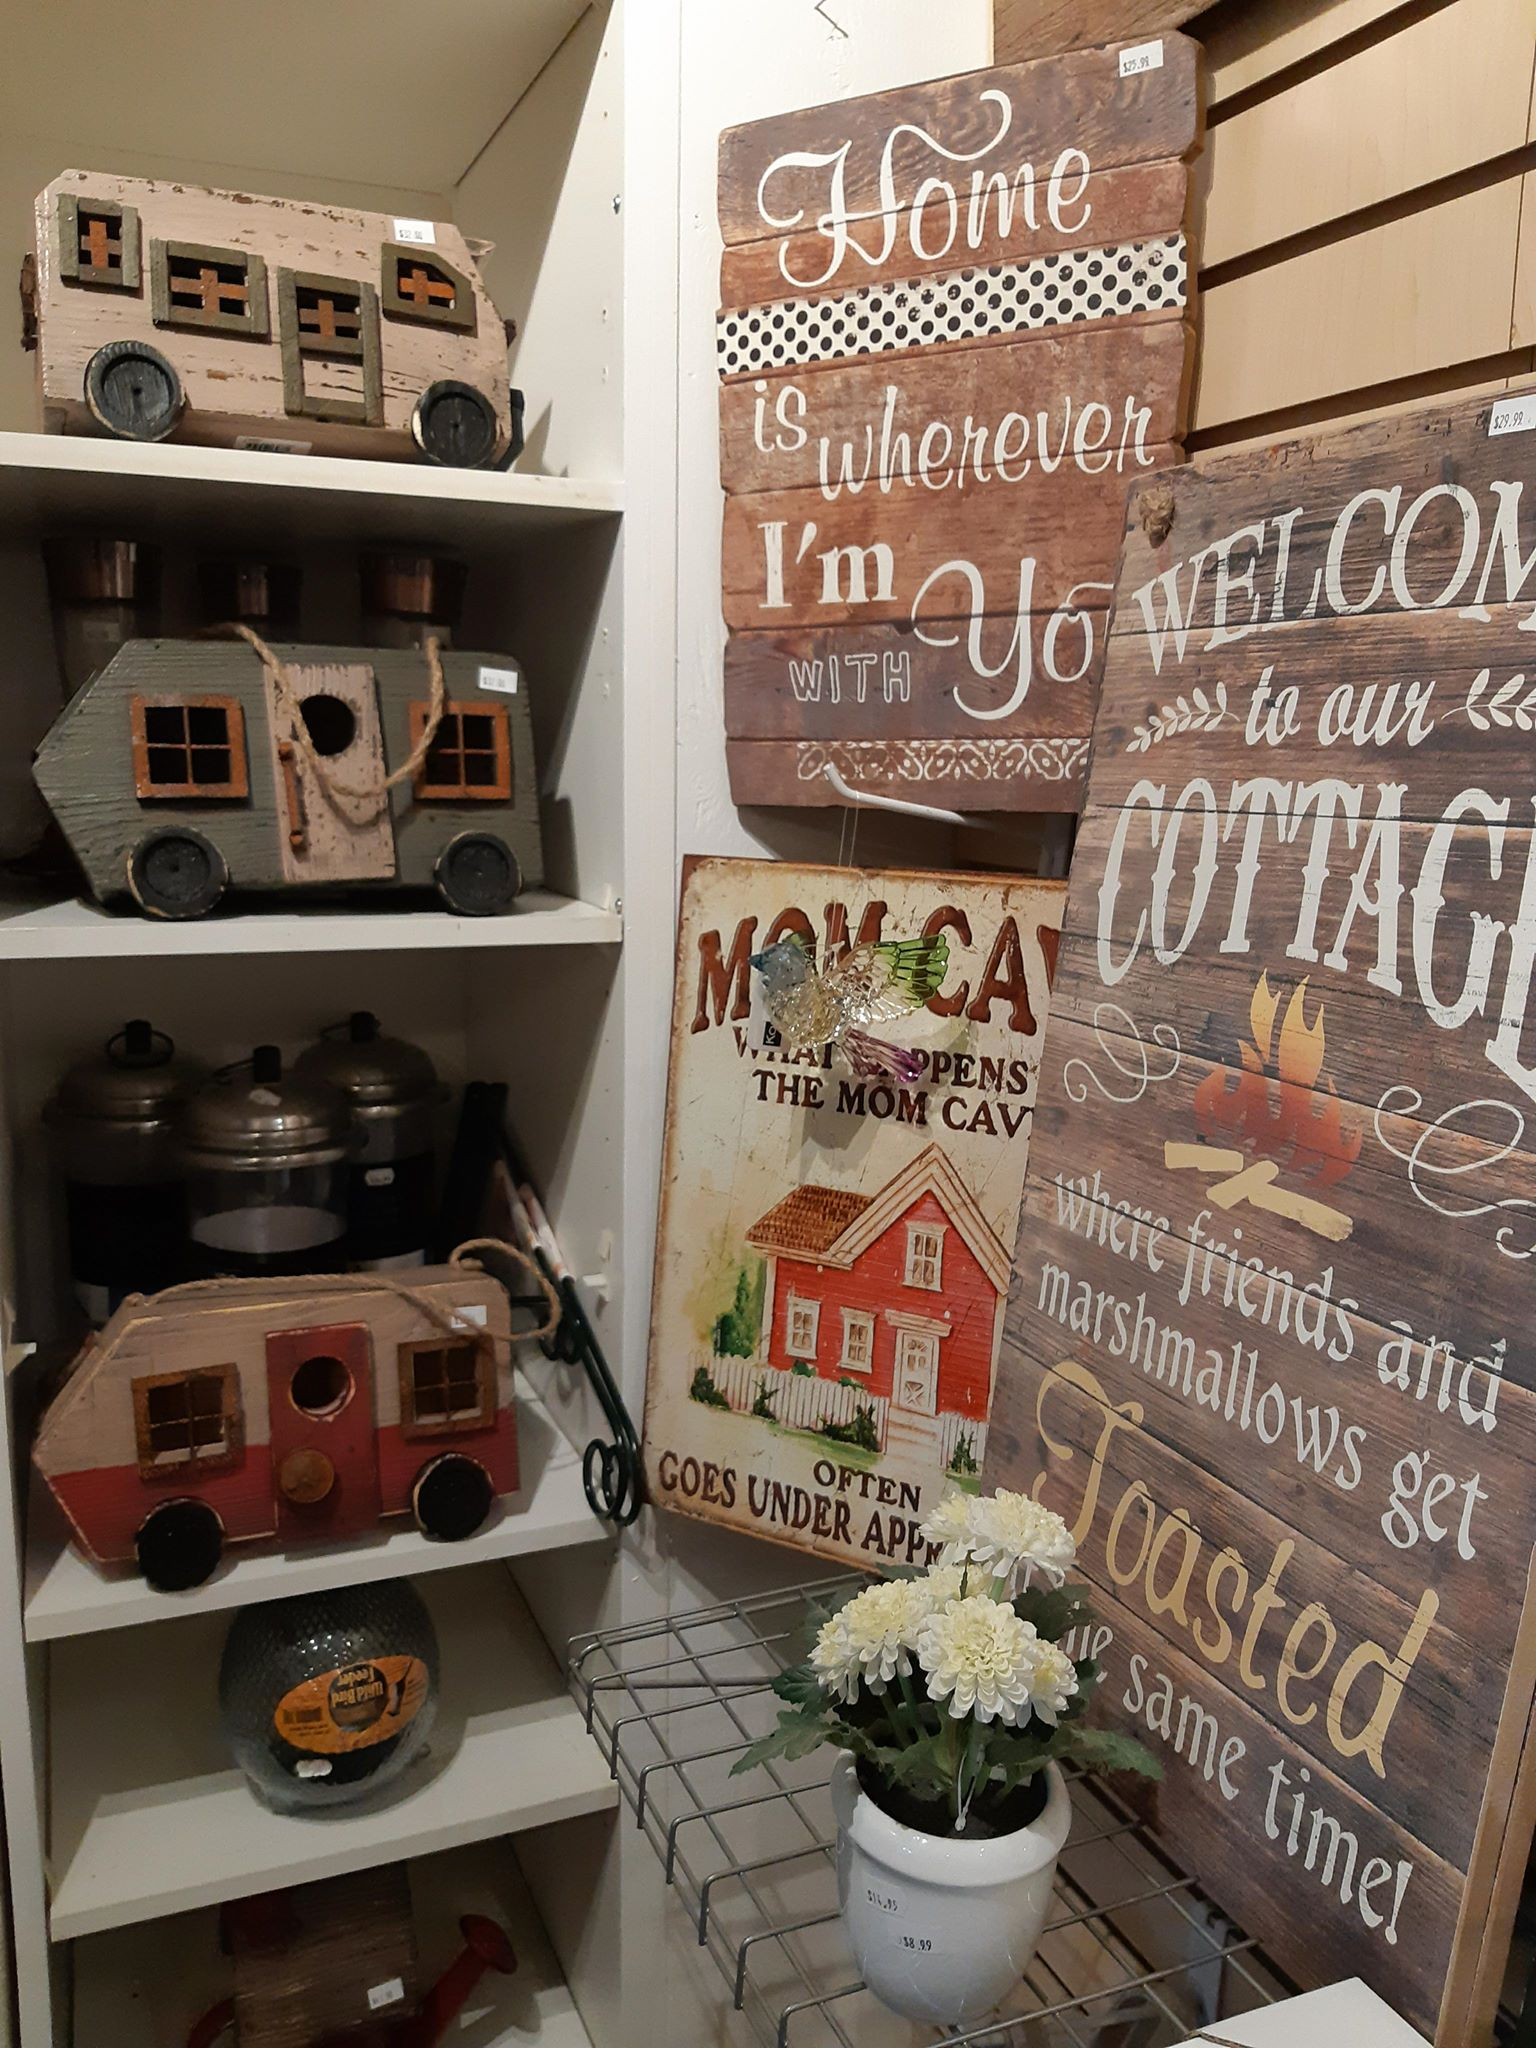 mancave signs, gifts